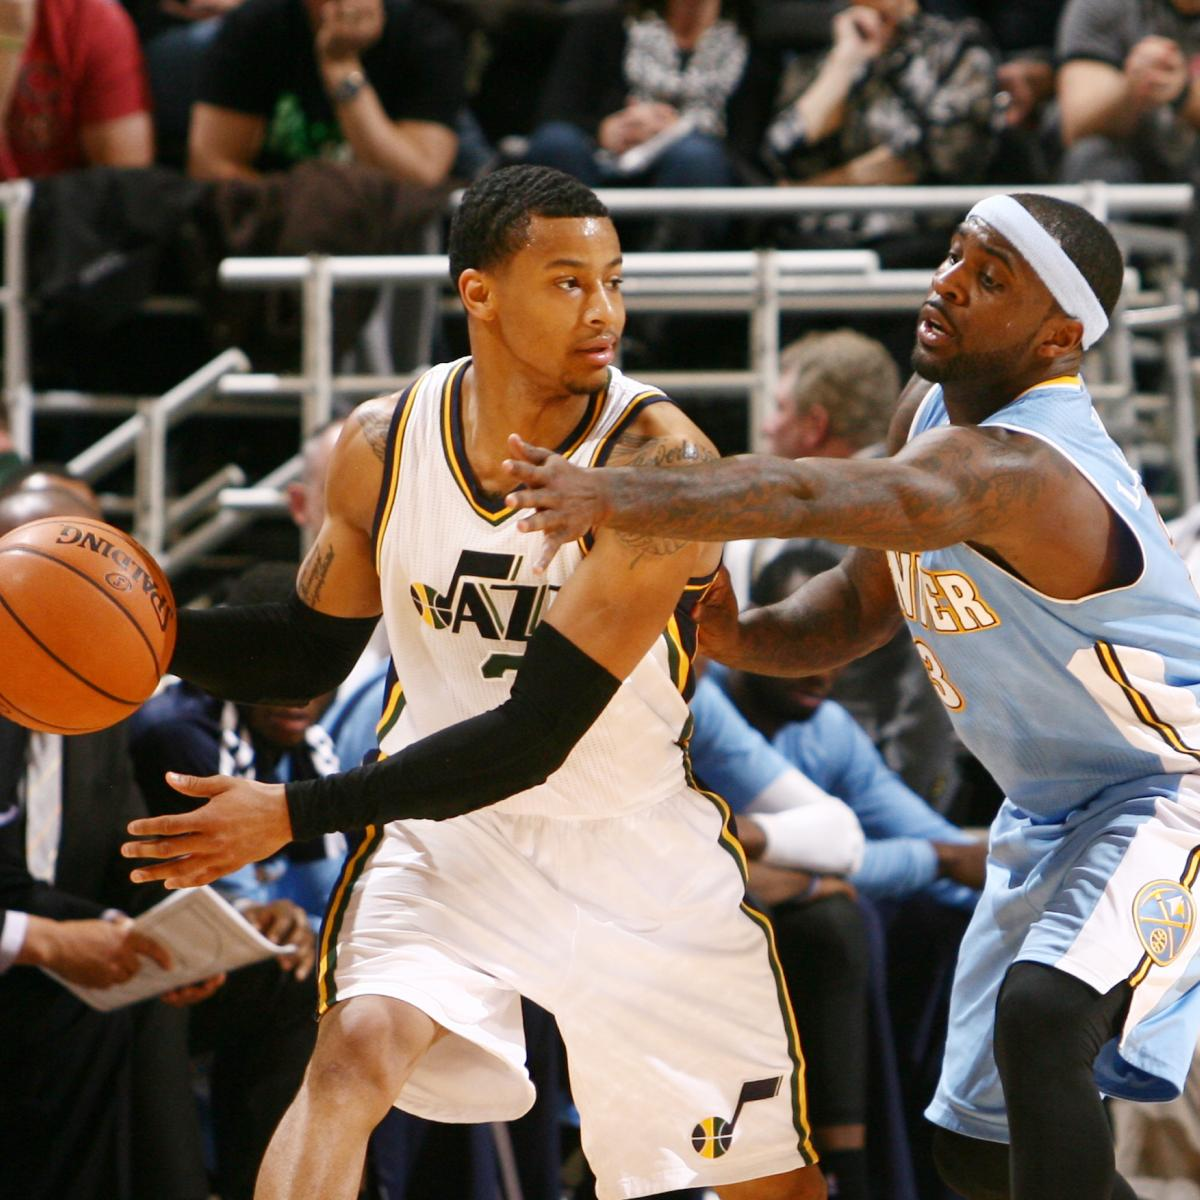 Denver Nuggets Vs. Utah Jazz 1/13/14: Video Highlights And